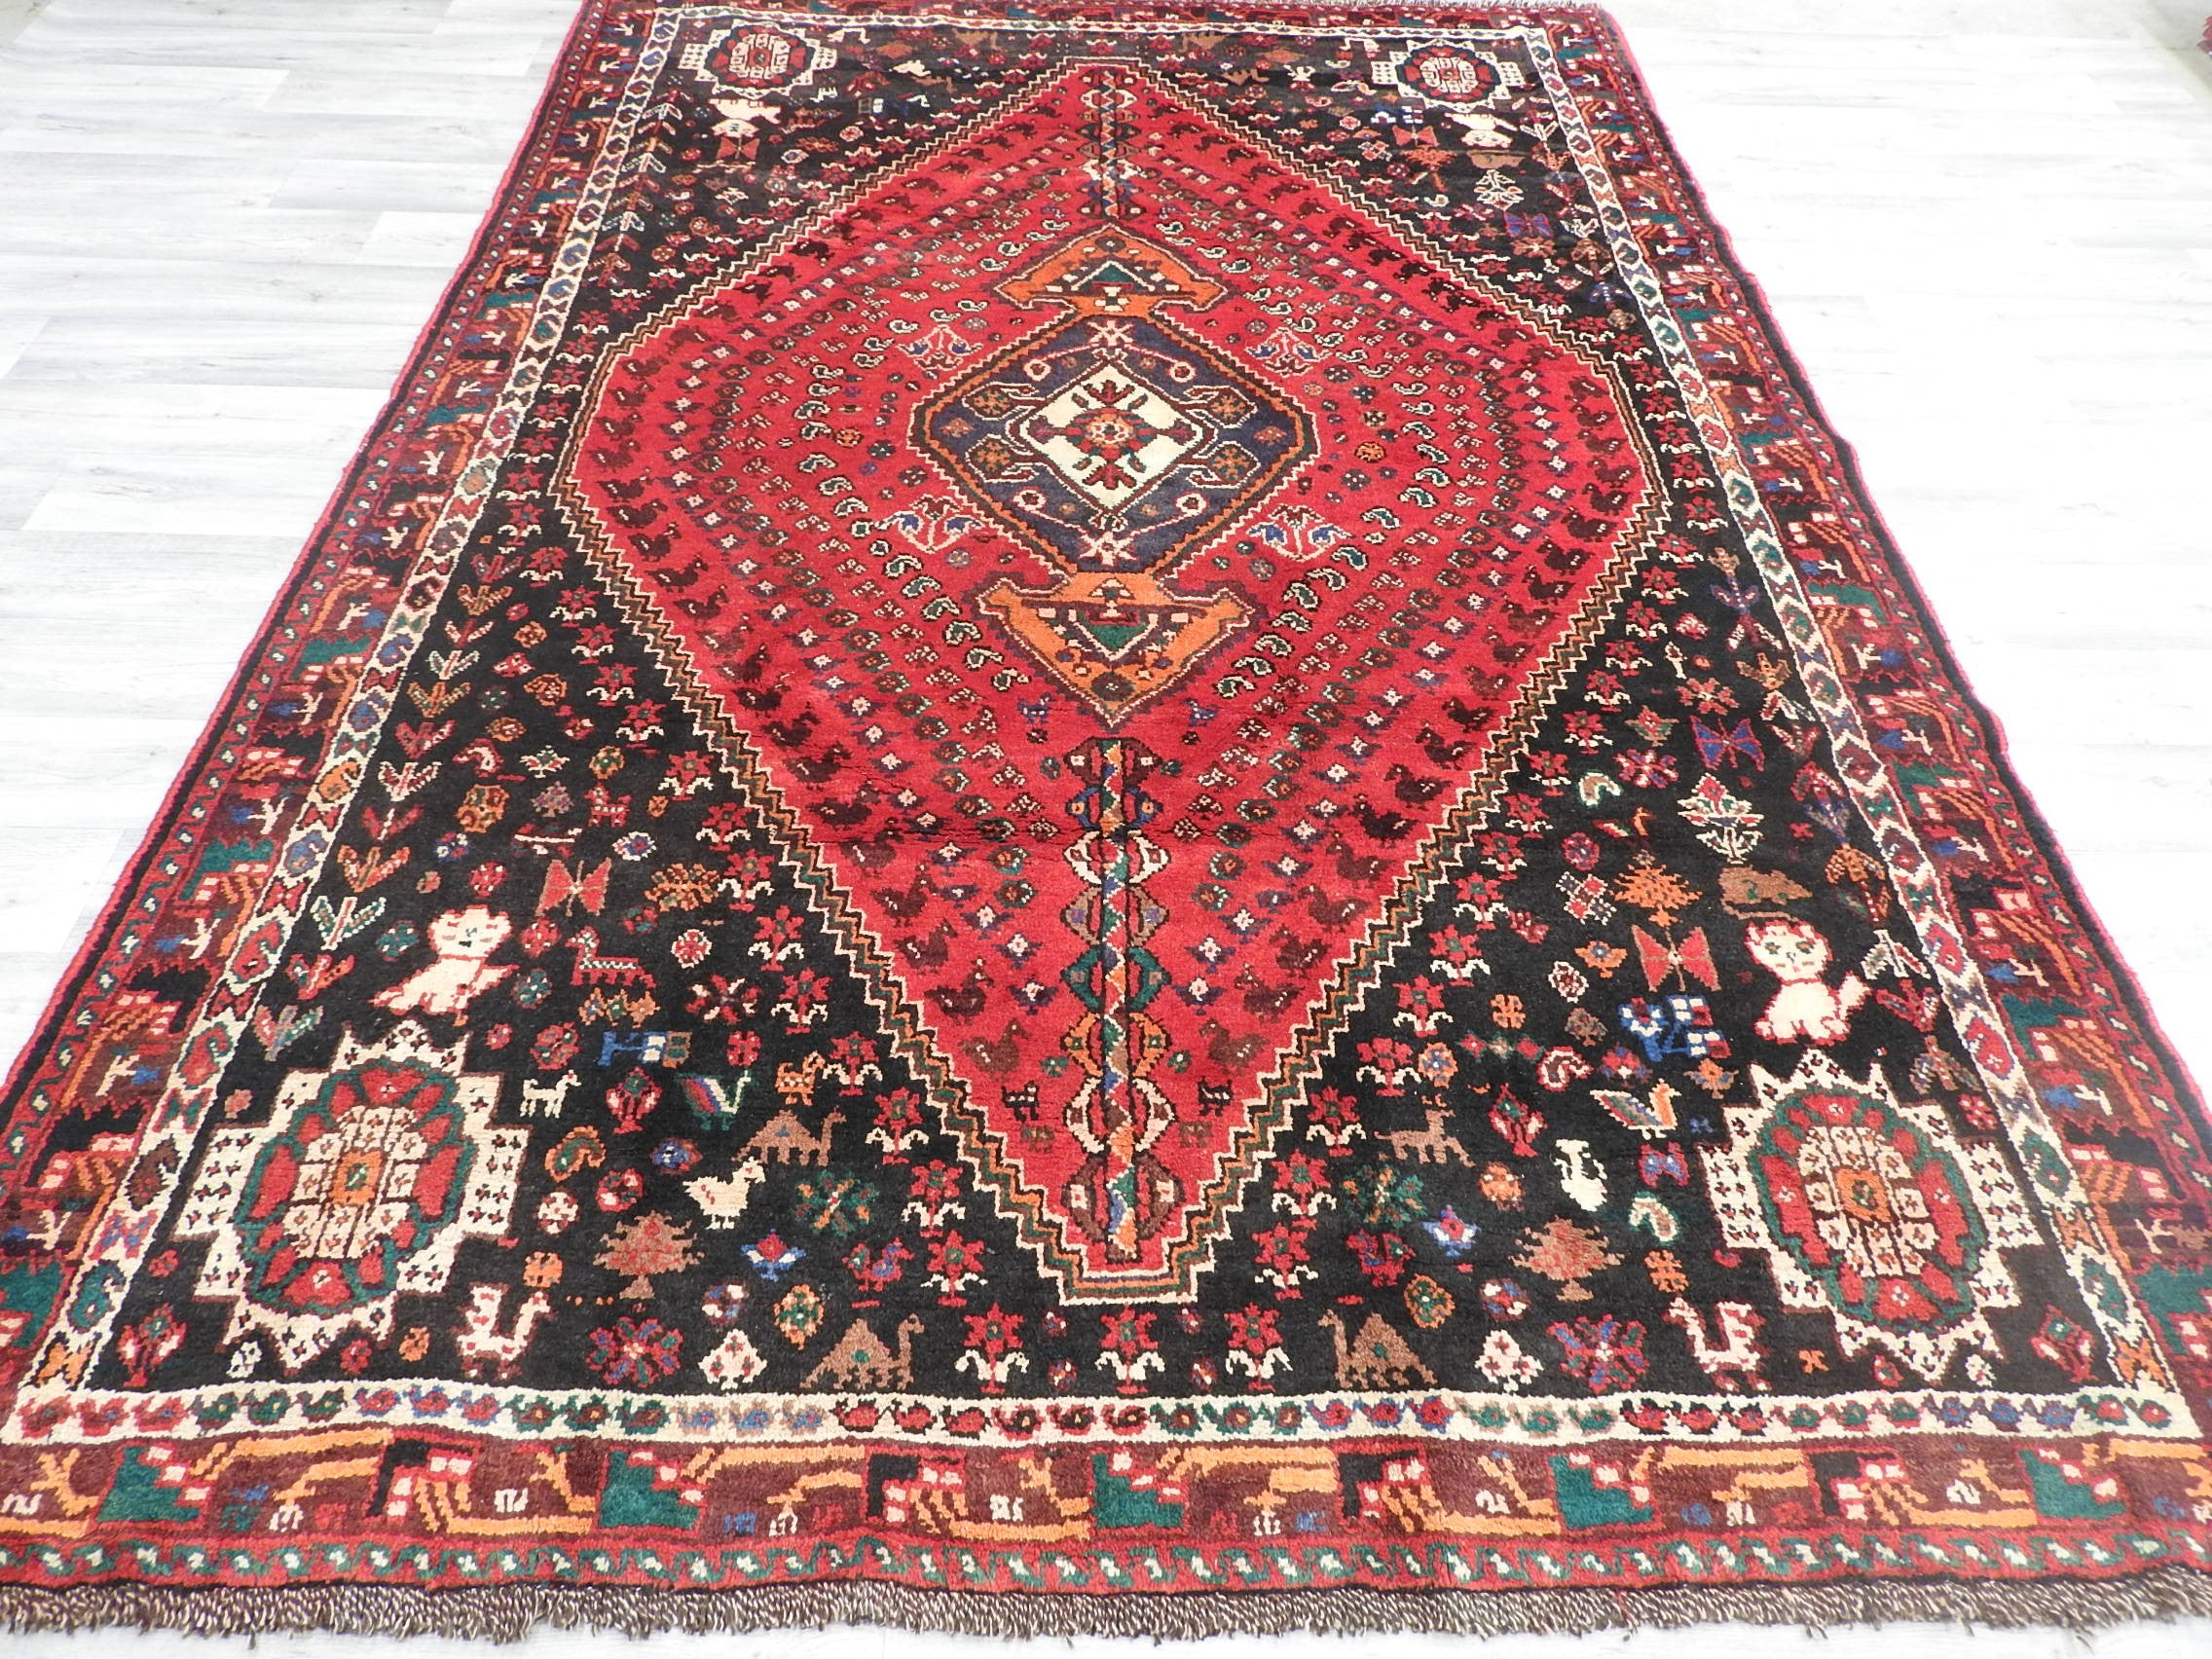 Persian Hand Knotted Shiraz Rug Size: 305 x 215cm